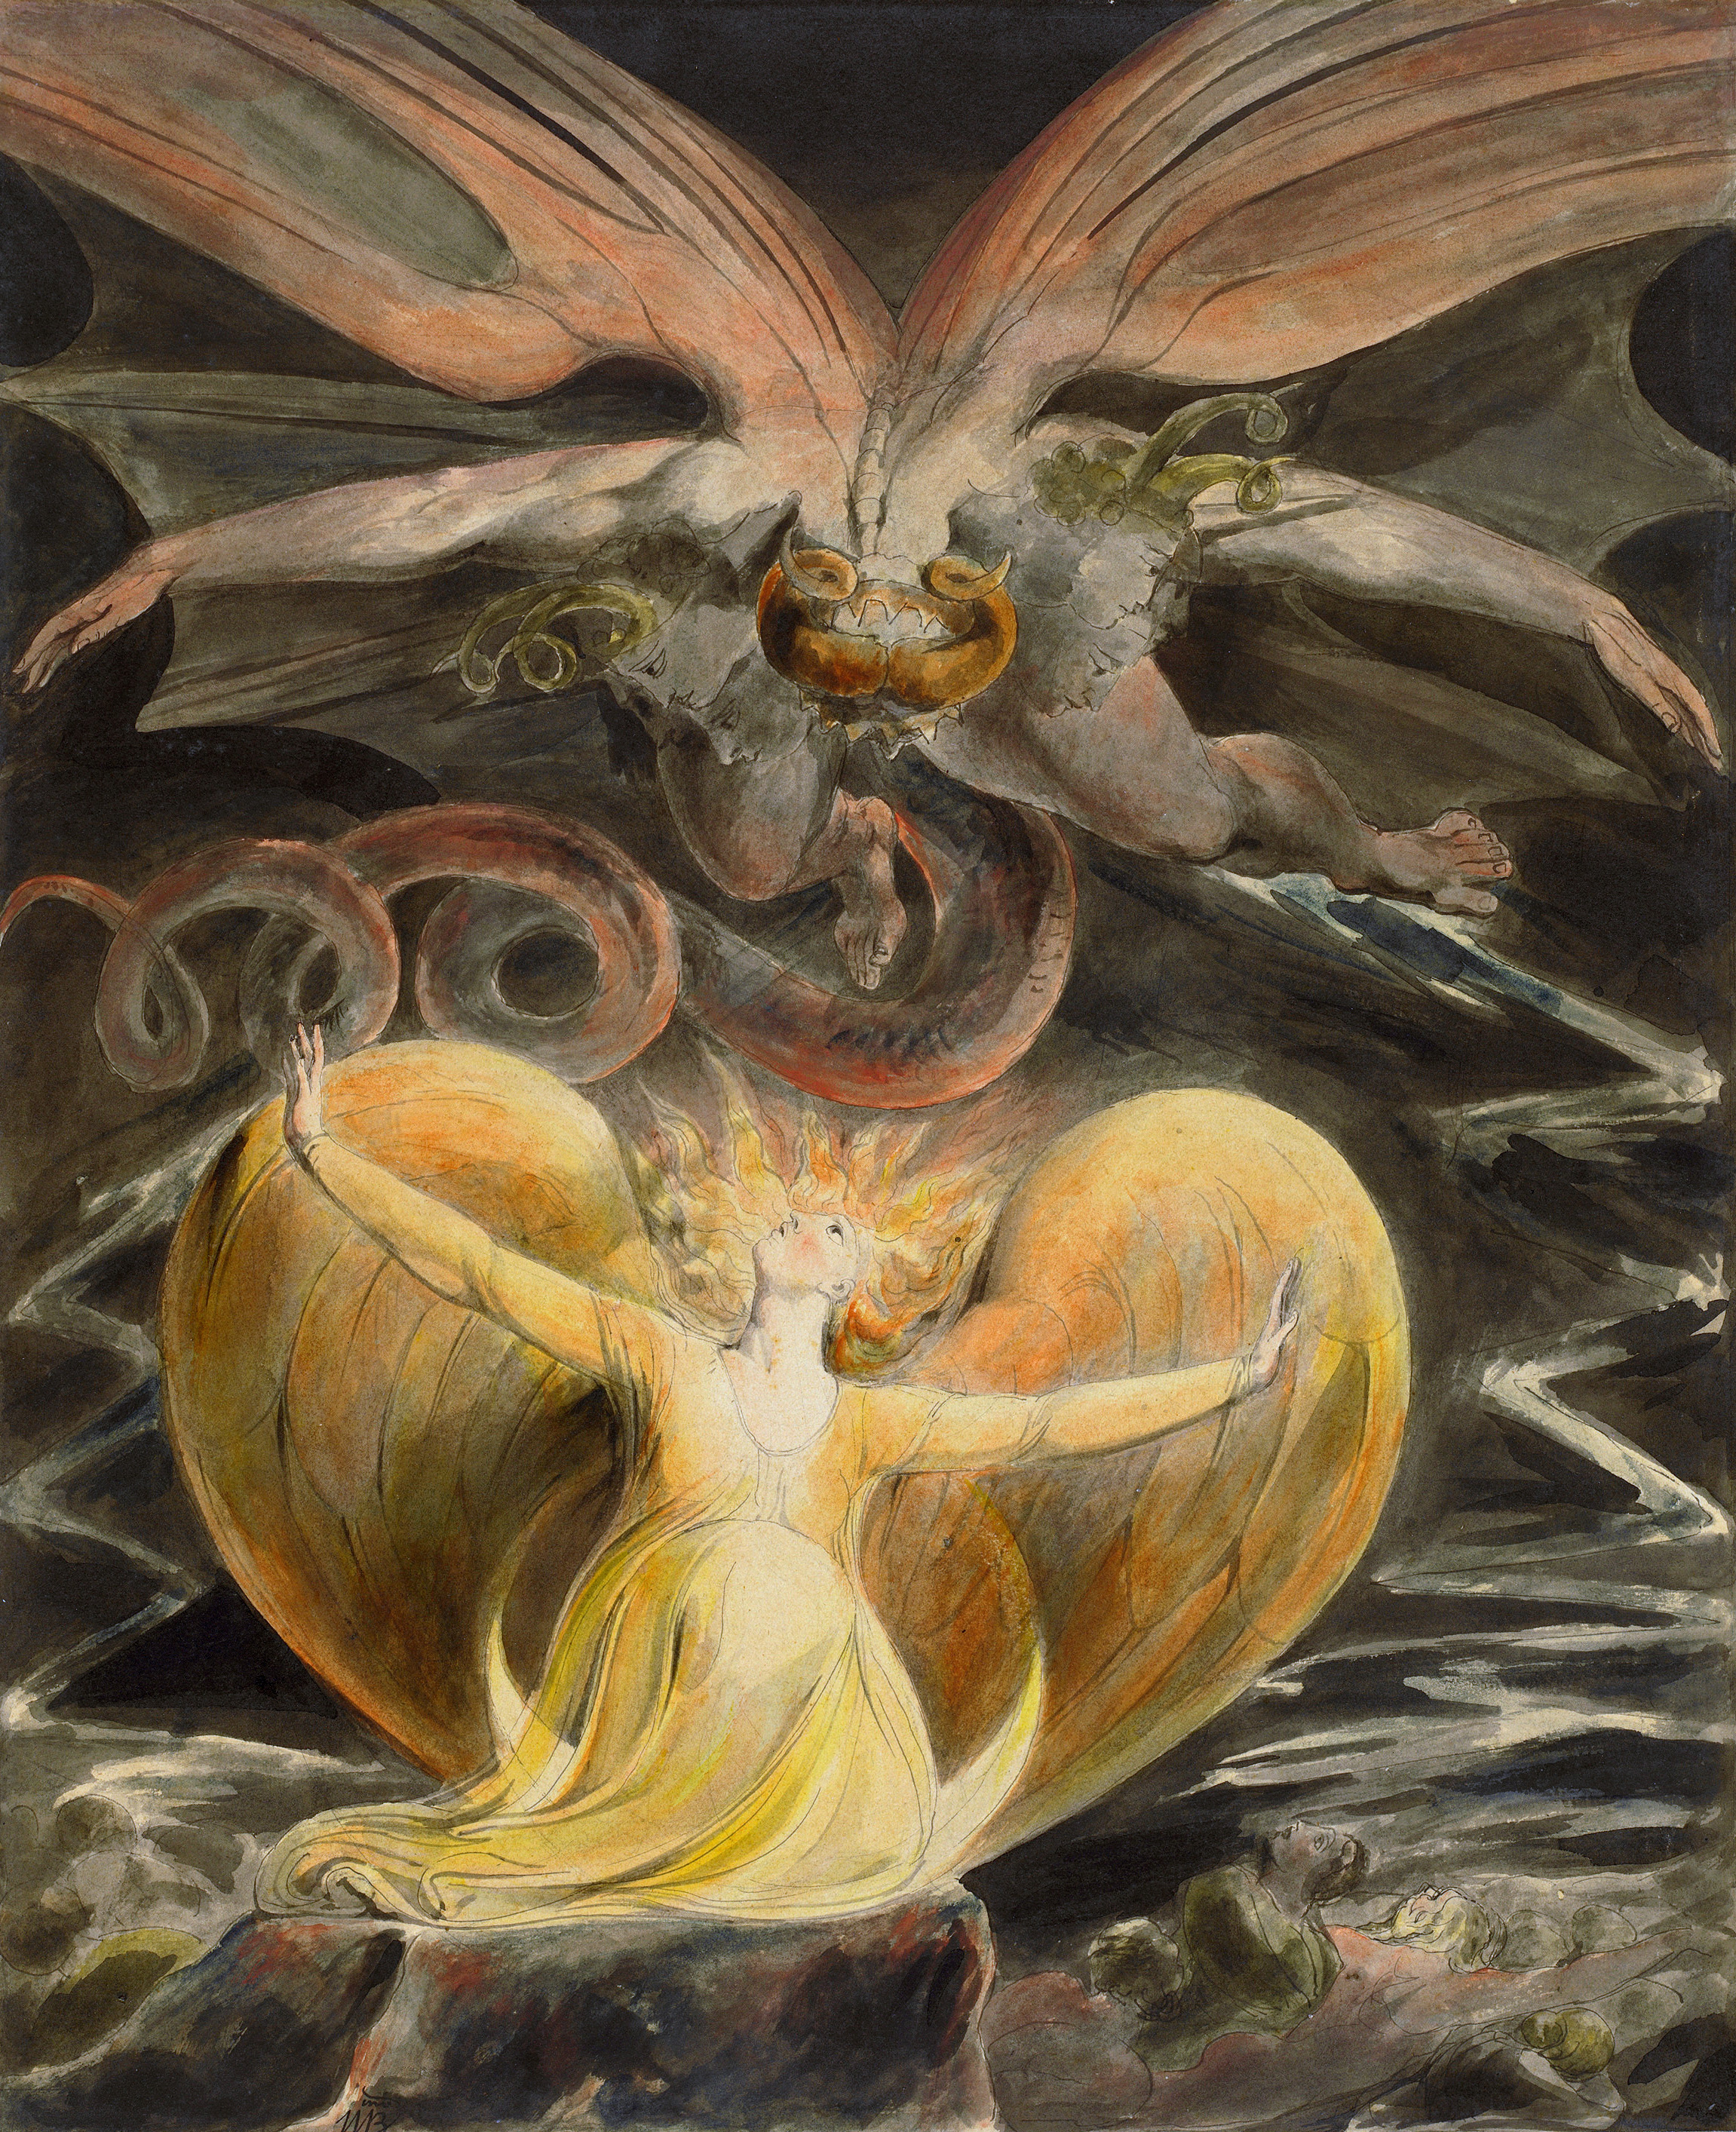 The Great Red Dragon and the Woman Clothed in Sun, 1810 — William Blake